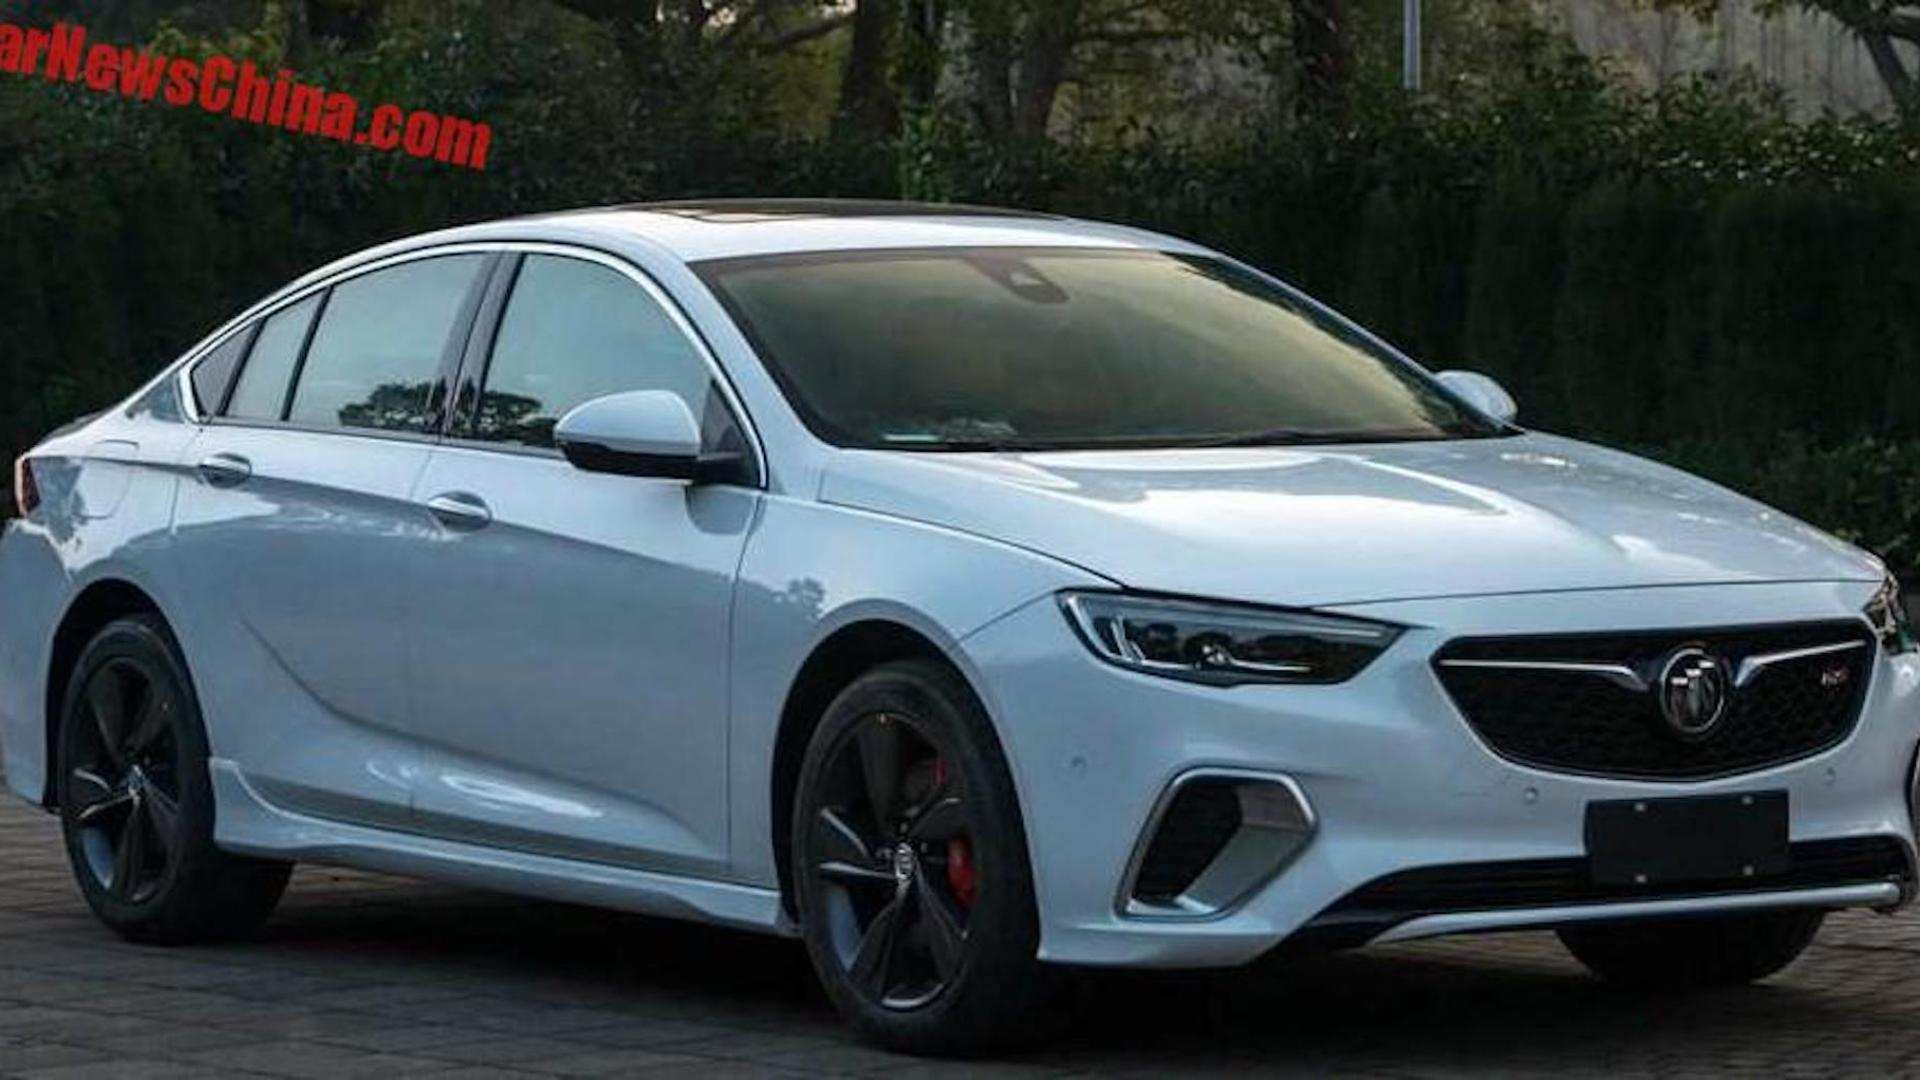 63 Gallery of 2019 Buick Regal Sportback Gs Release Date Redesign and Concept by 2019 Buick Regal Sportback Gs Release Date